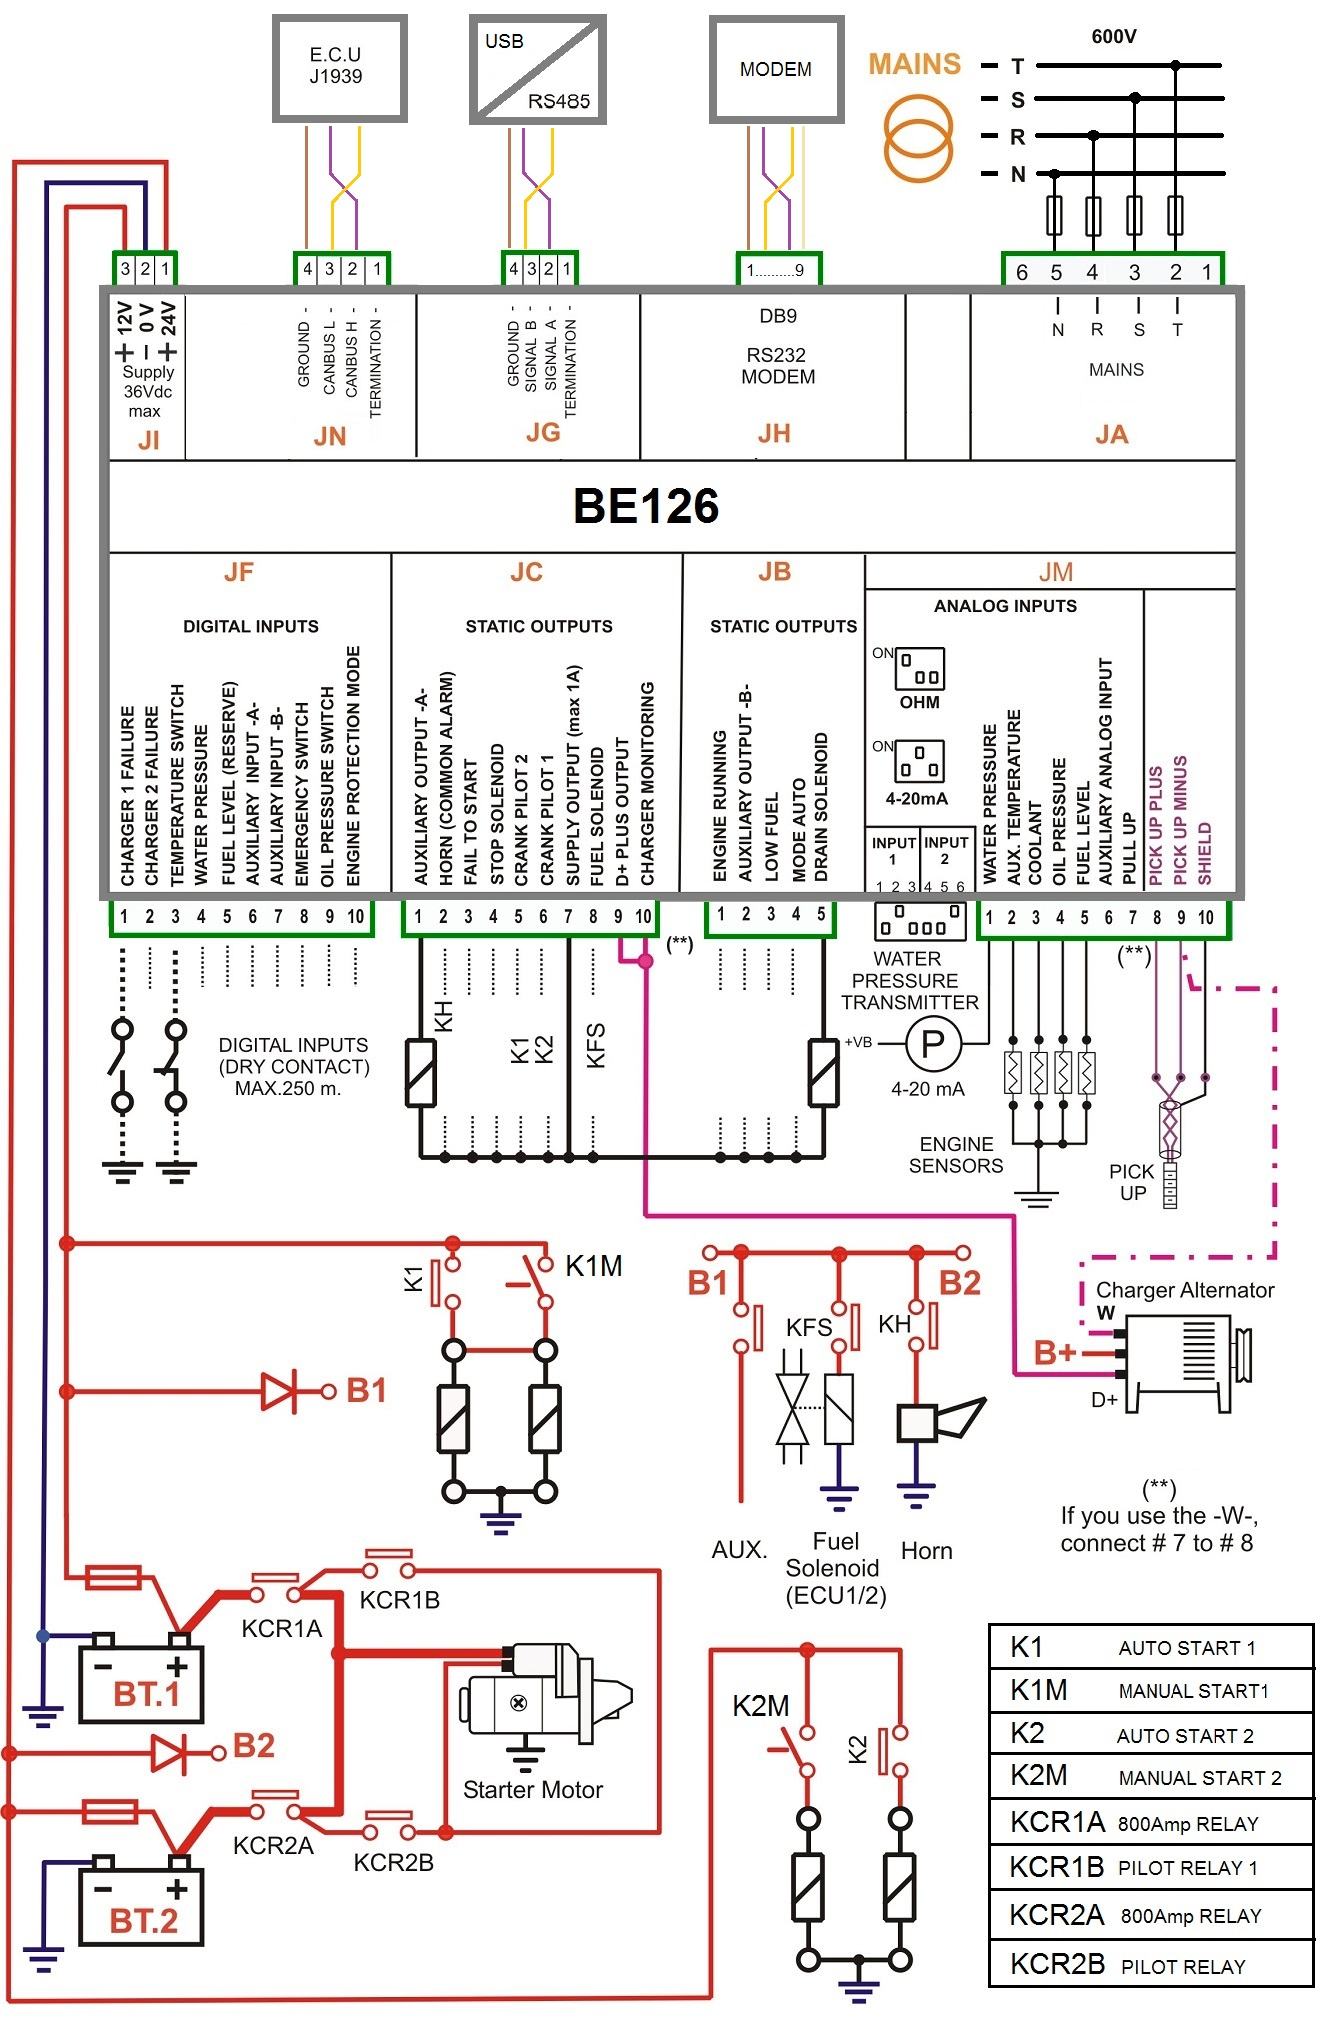 Fire Pump Controller Wiring Diagram Genset Electrical Fuse Panel Of Pole 3